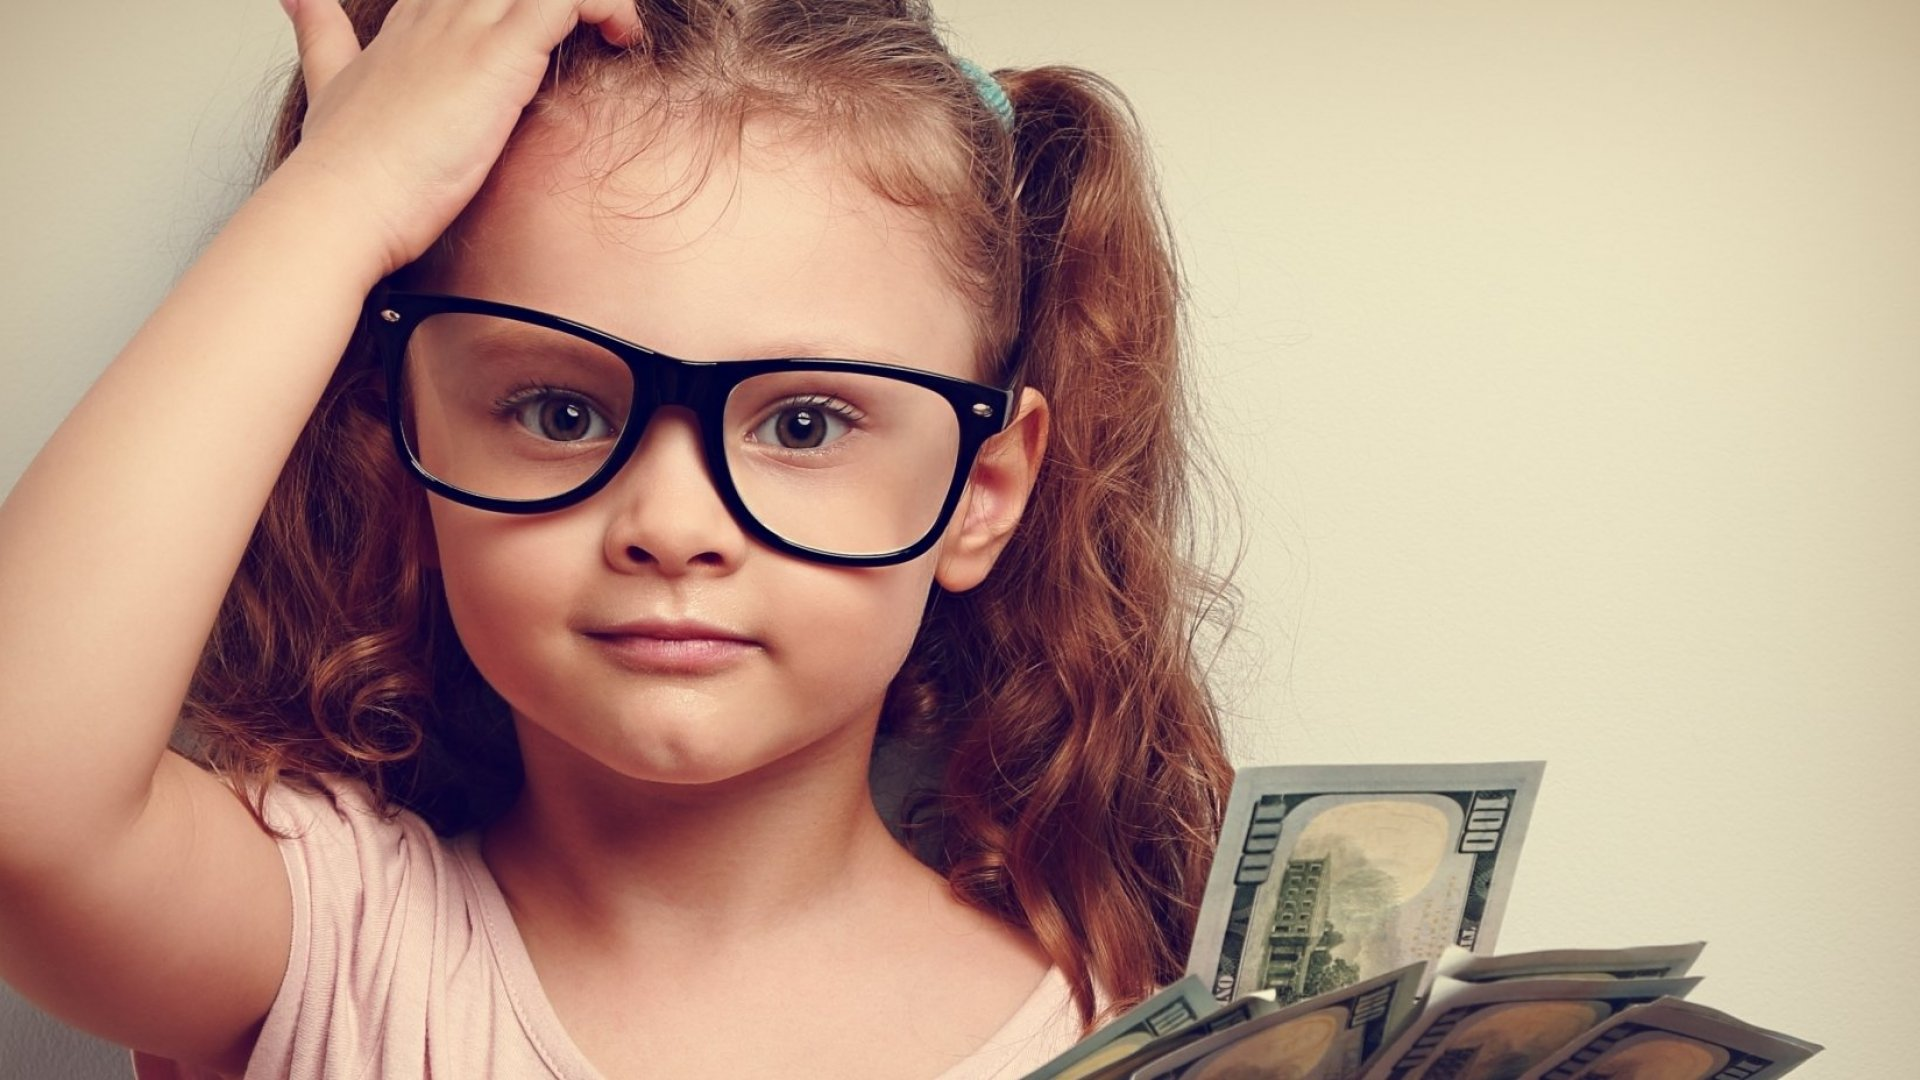 Growing Up Wealthy Can Be a Major Obstacle to True Success